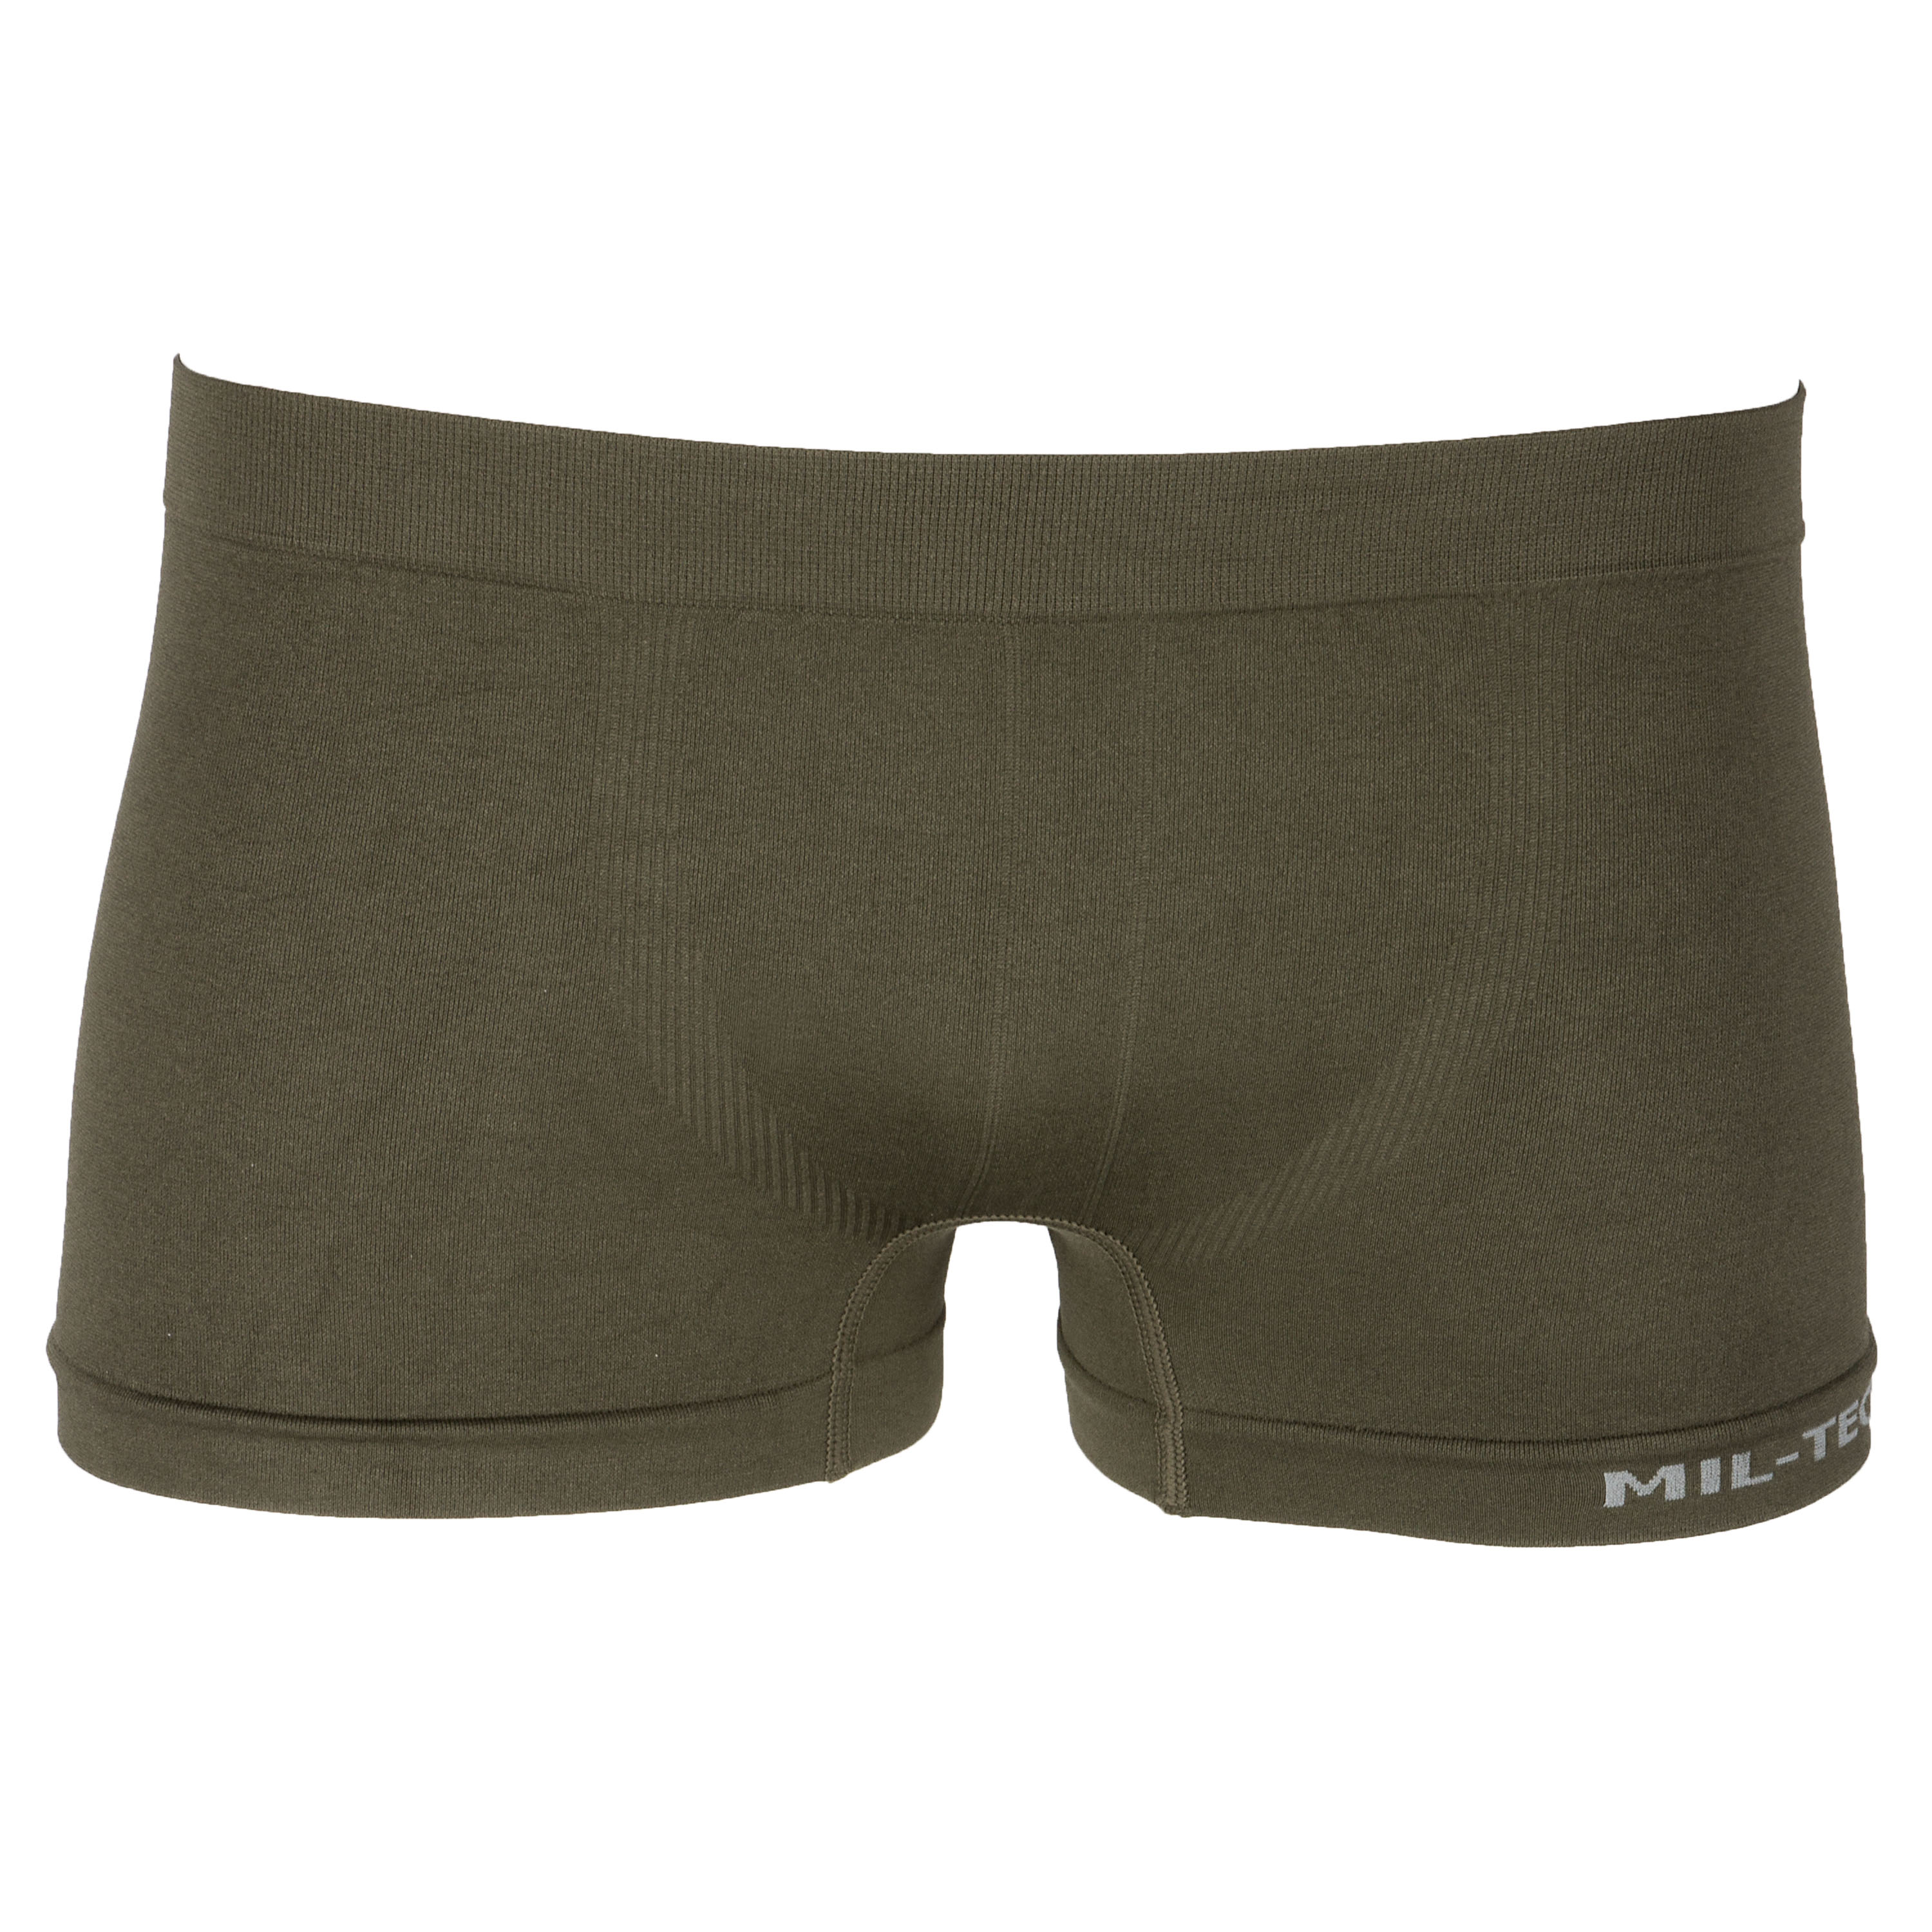 Boxer Shorts Mil-Tec Sports oliv